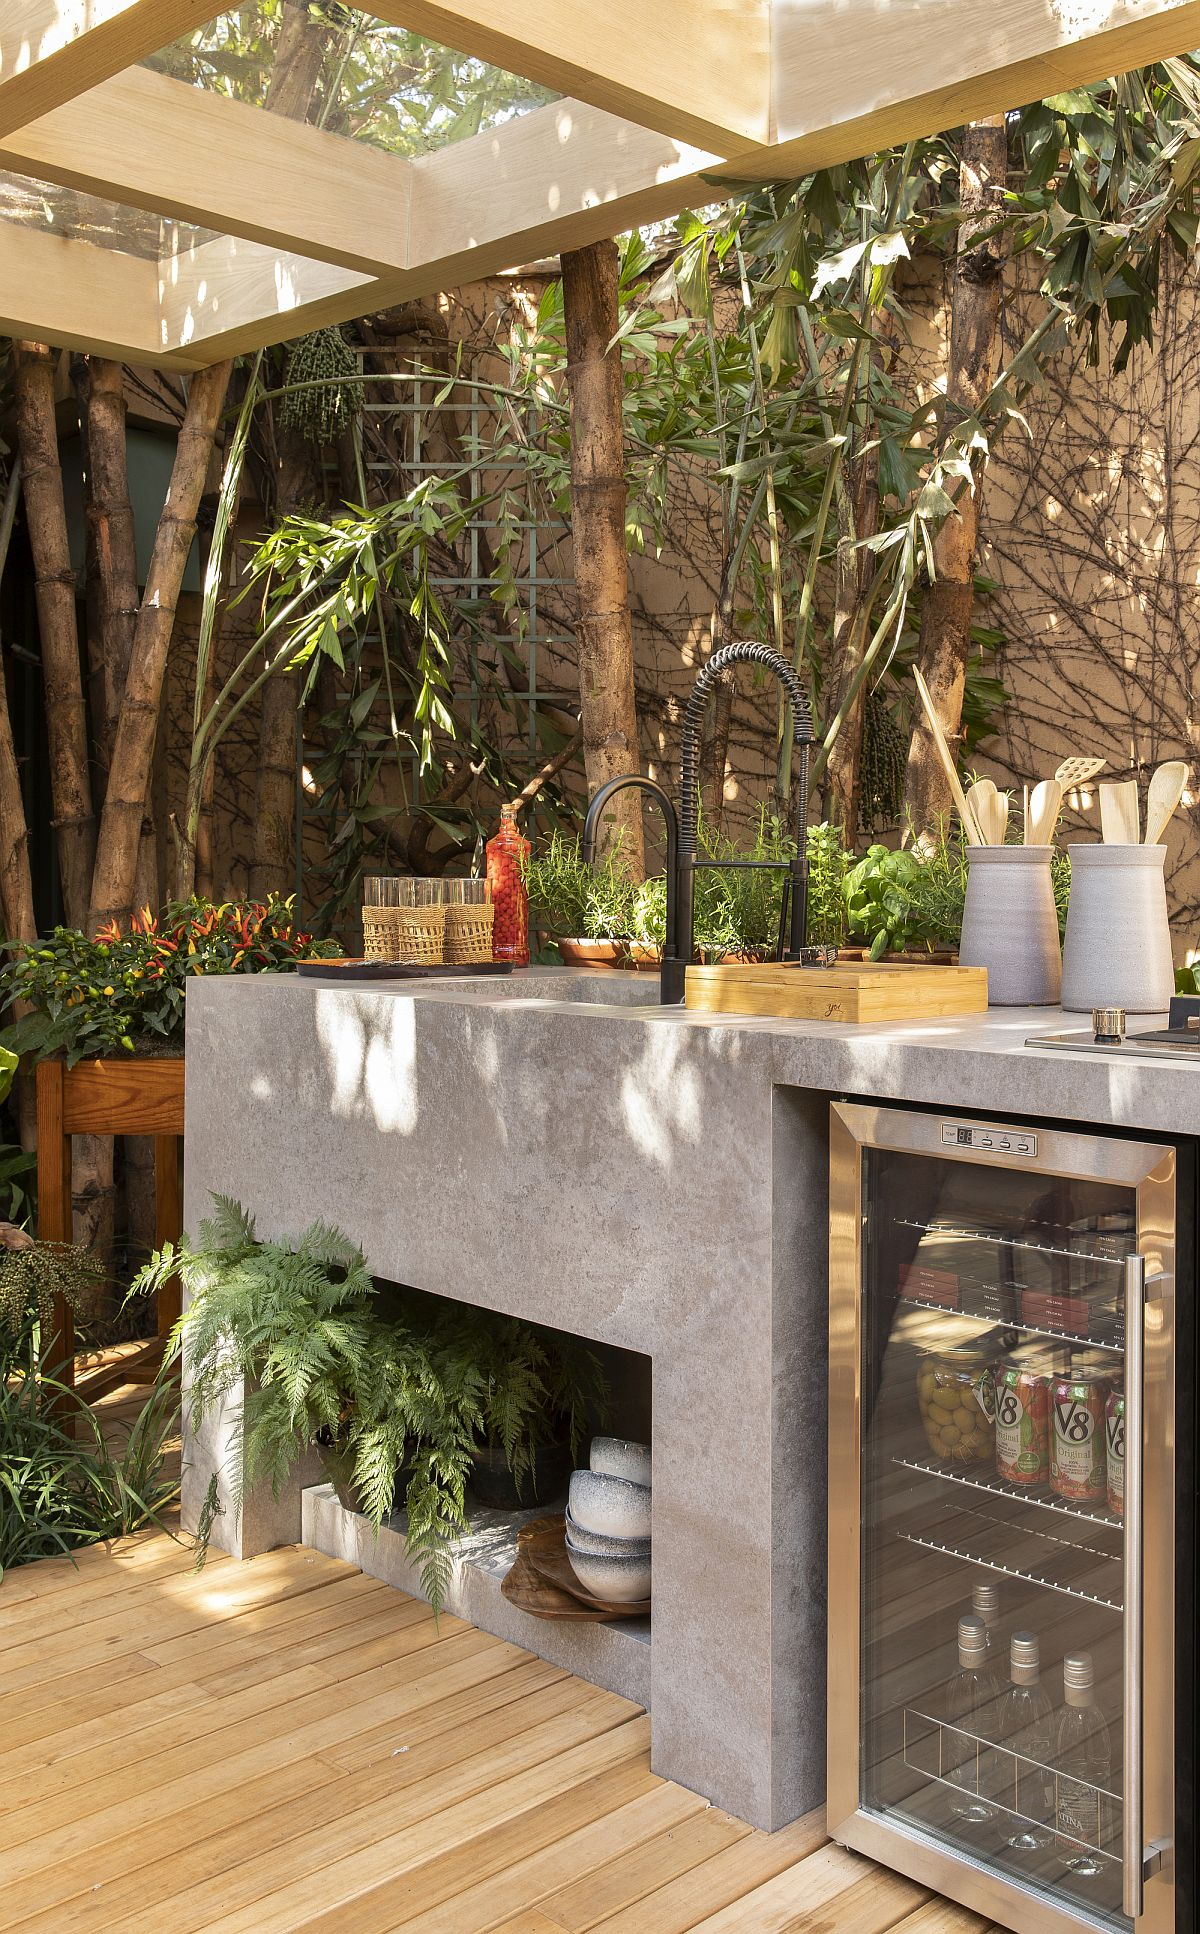 Outdoor kitchen, barbecue zone and beer cooler at the Forest House in Brazil